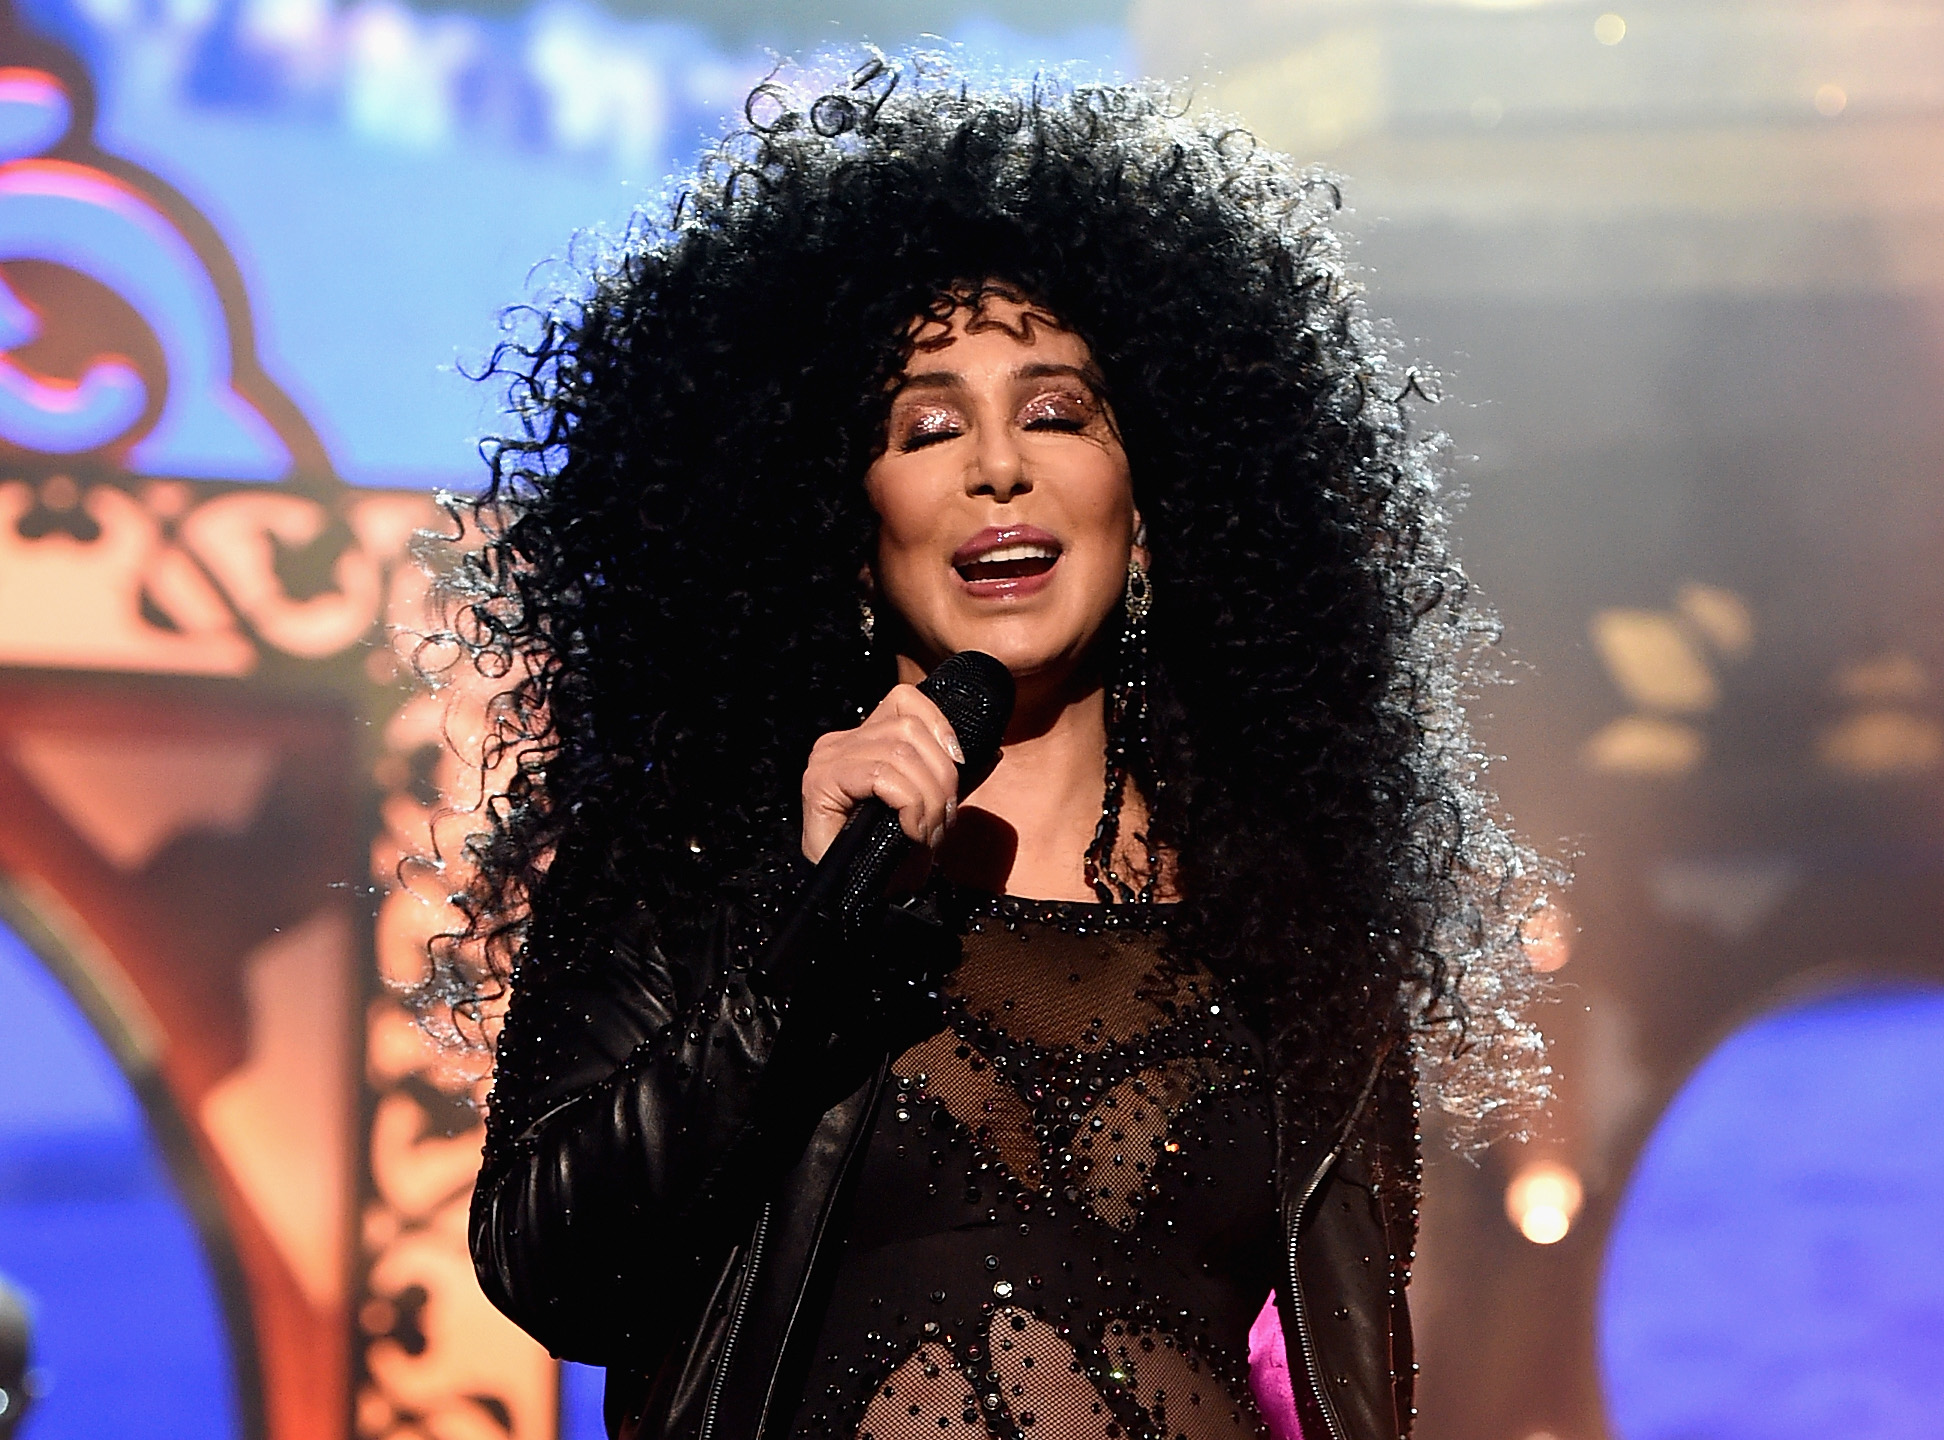 Cher performs onstage during the 2017 Billboard Music Awards in Las Vegas, Nevada, on May 21, 2017.